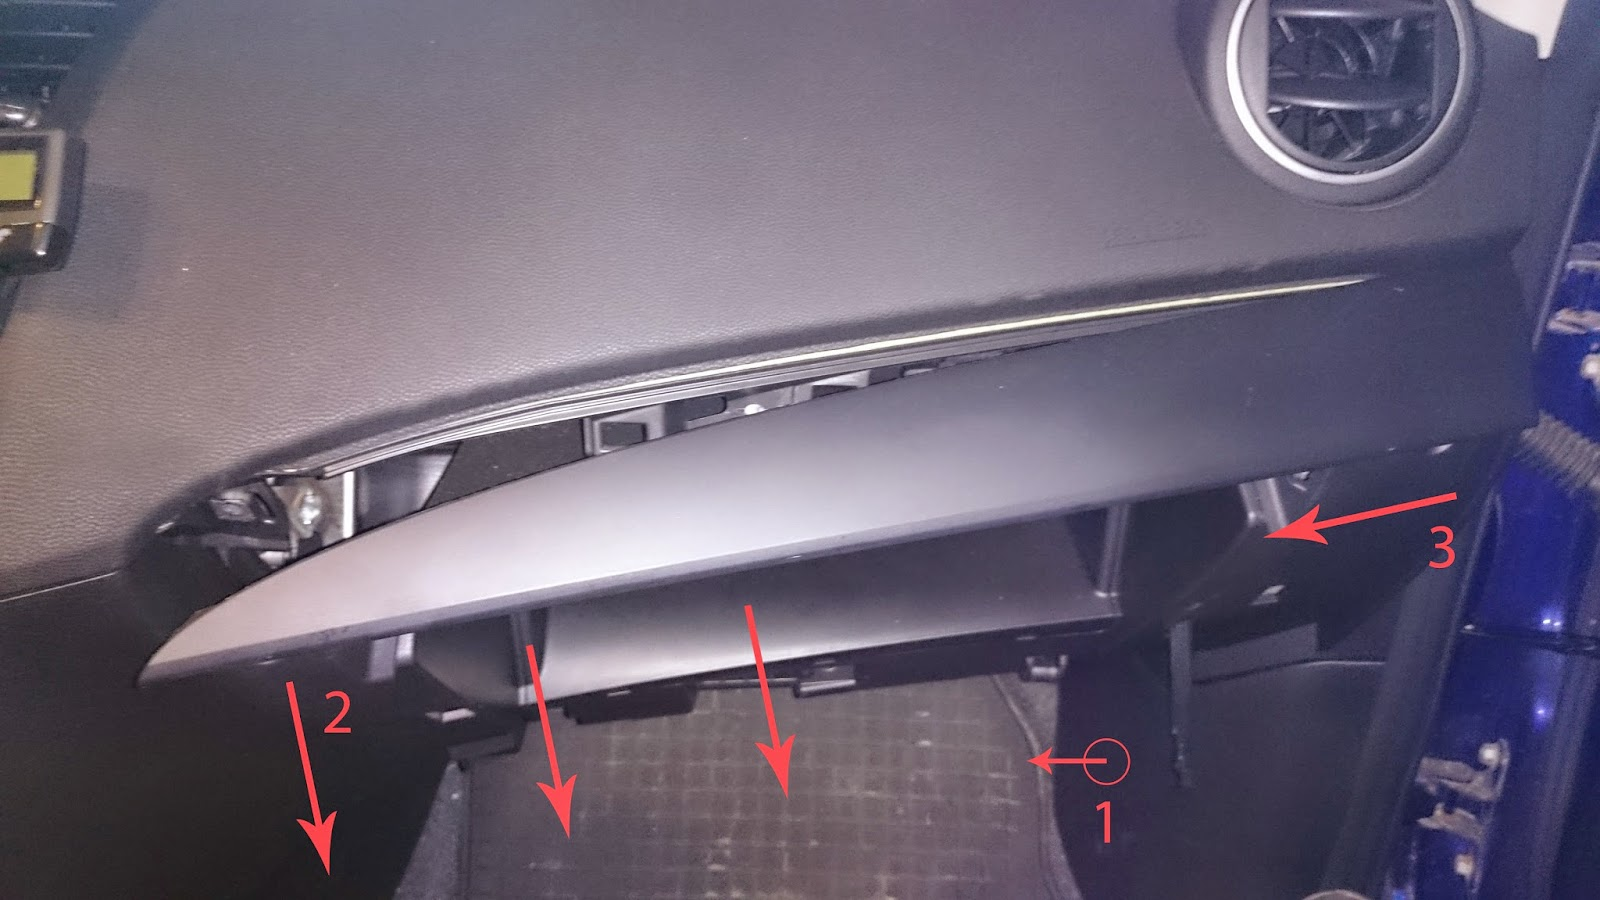 medium resolution of while the screwdriver is in the hole pull it towards you to detach the lower panel you will need some force to do that the dashboard holds together quite